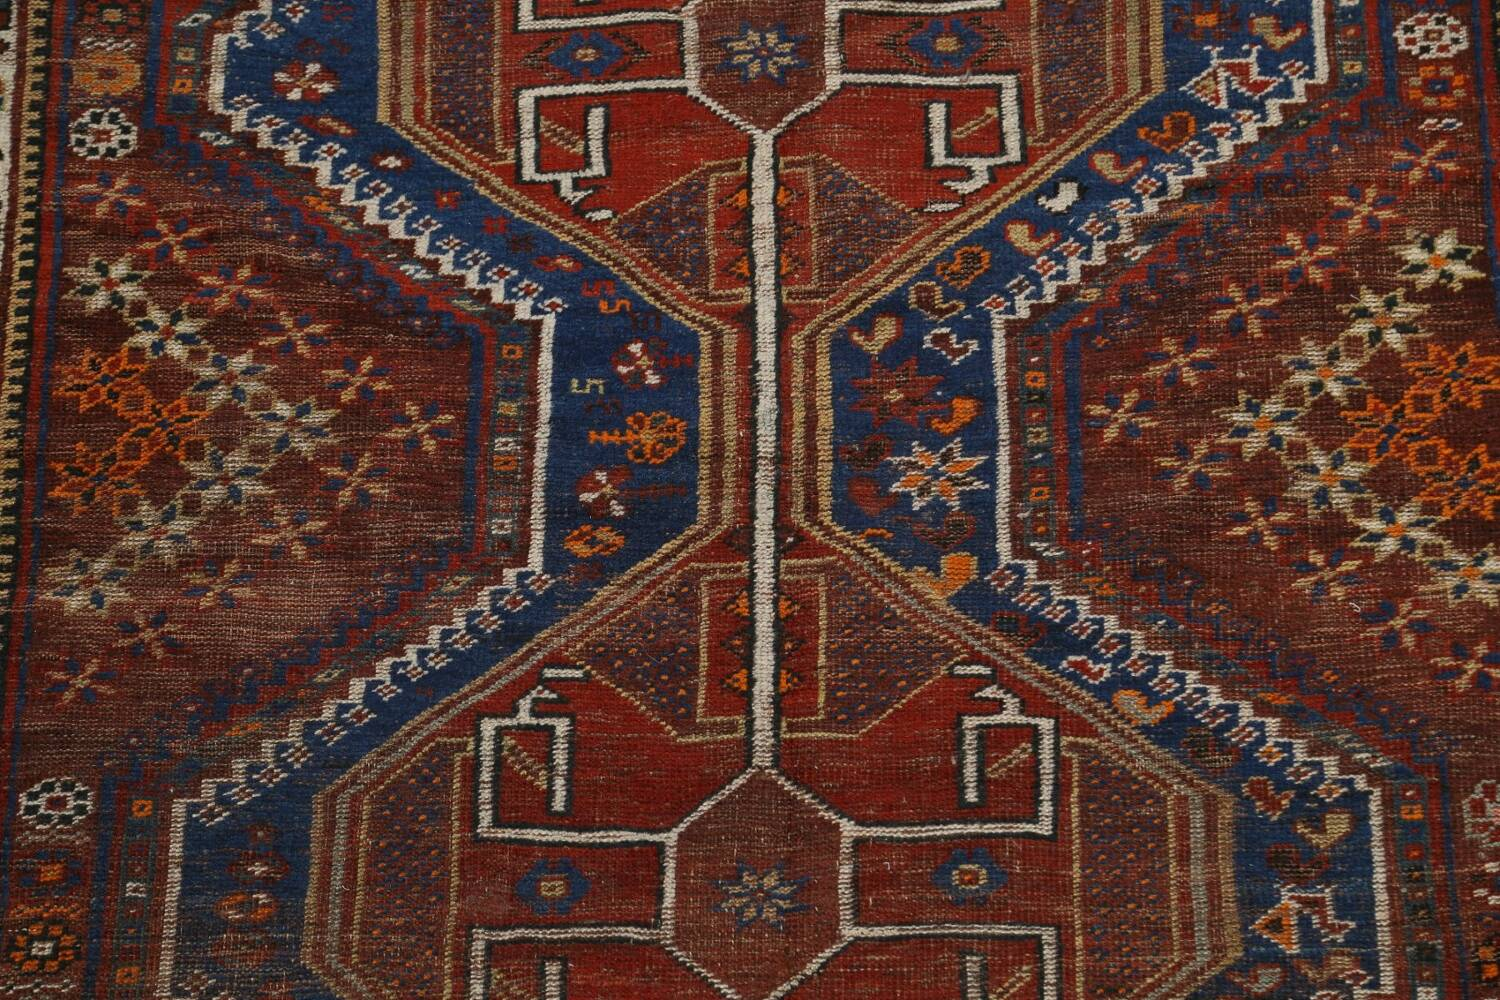 Pre-1900 Antique Ghashghaie Persian Area Rug 5x6 image 4